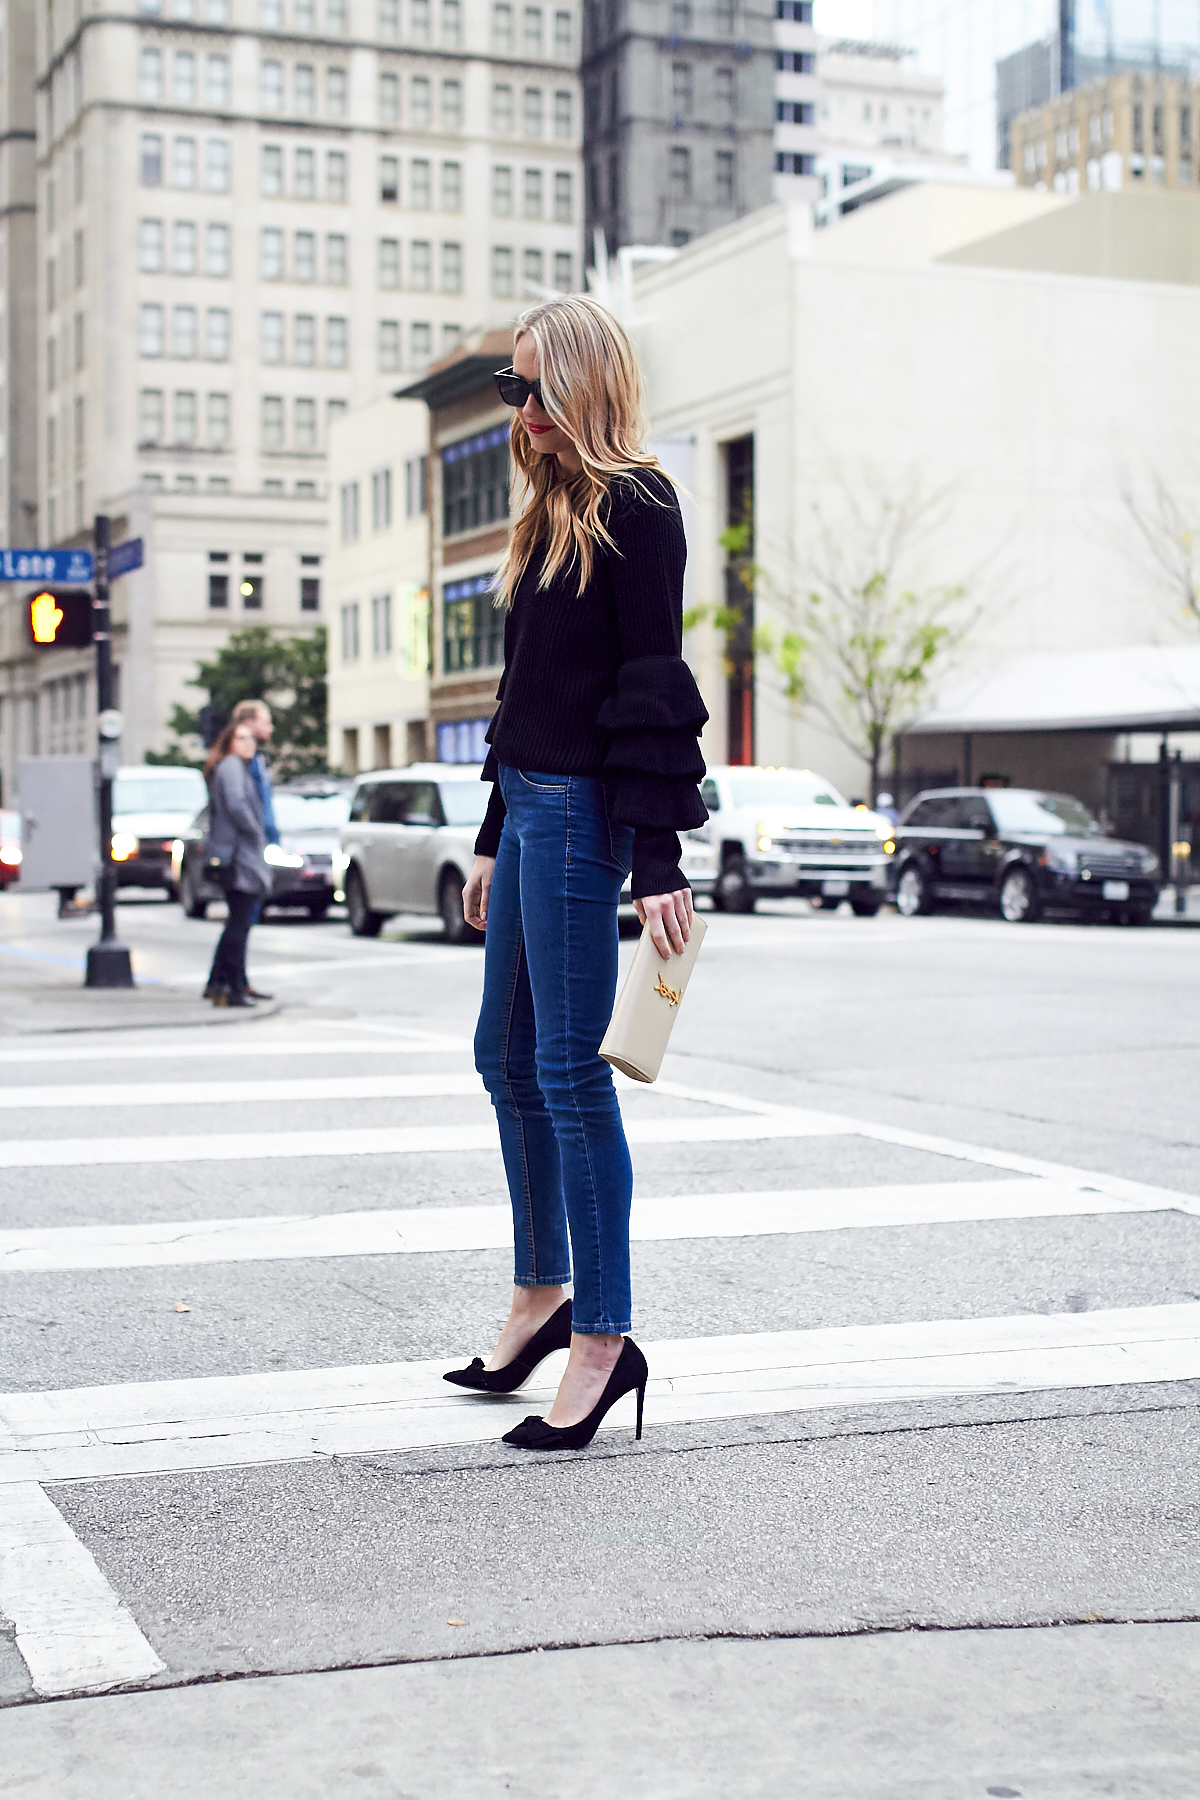 Fall Outfit, Winter Outfit, Ruffle Sleeve Sweater, Denim Skinny Jeans, Black Bow Pumps, Red Lipstick, Saint Laurent Clutch